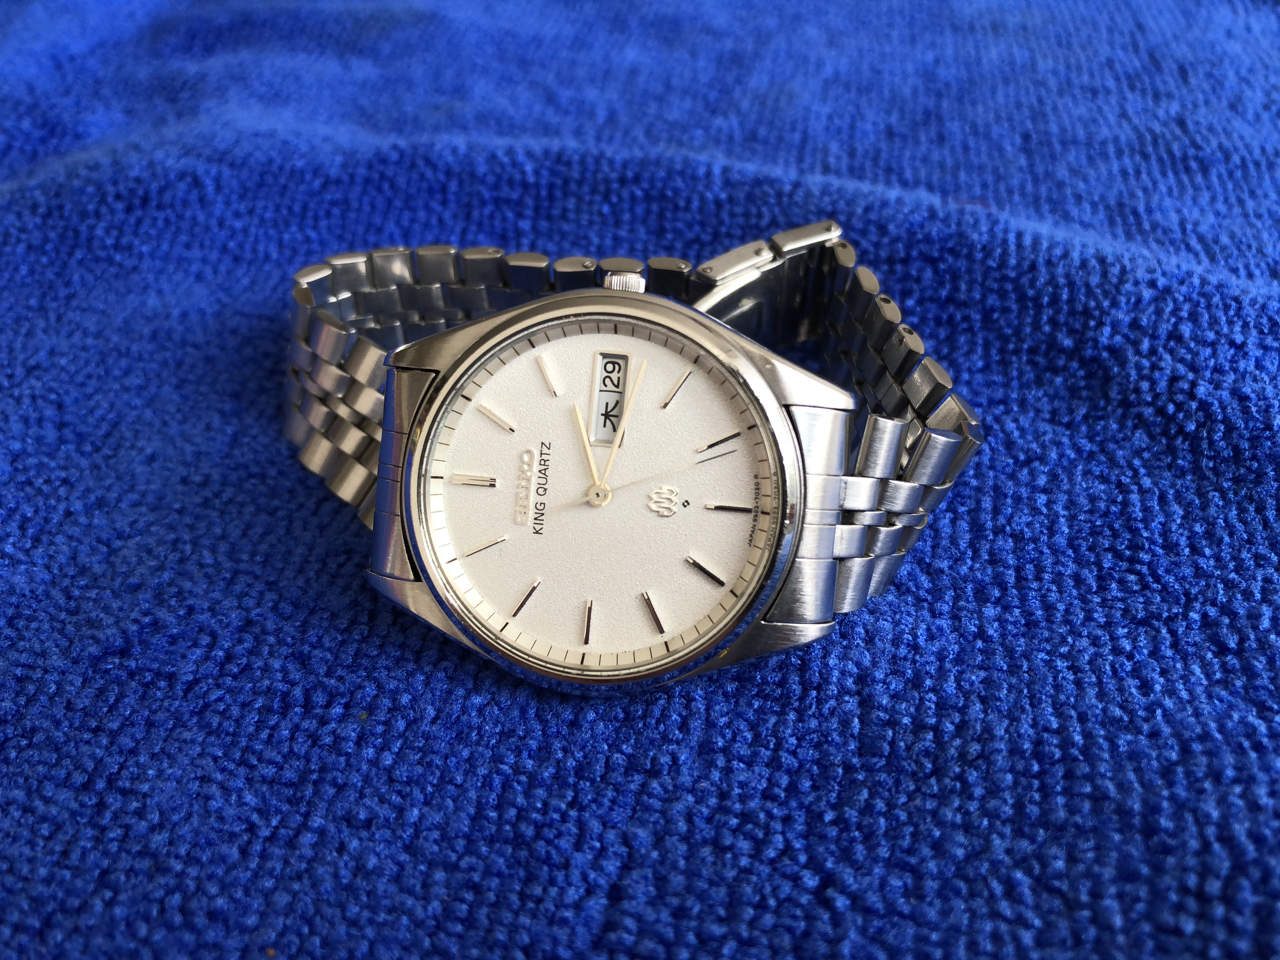 Seiko King Quartz 9923-7020 (sold)